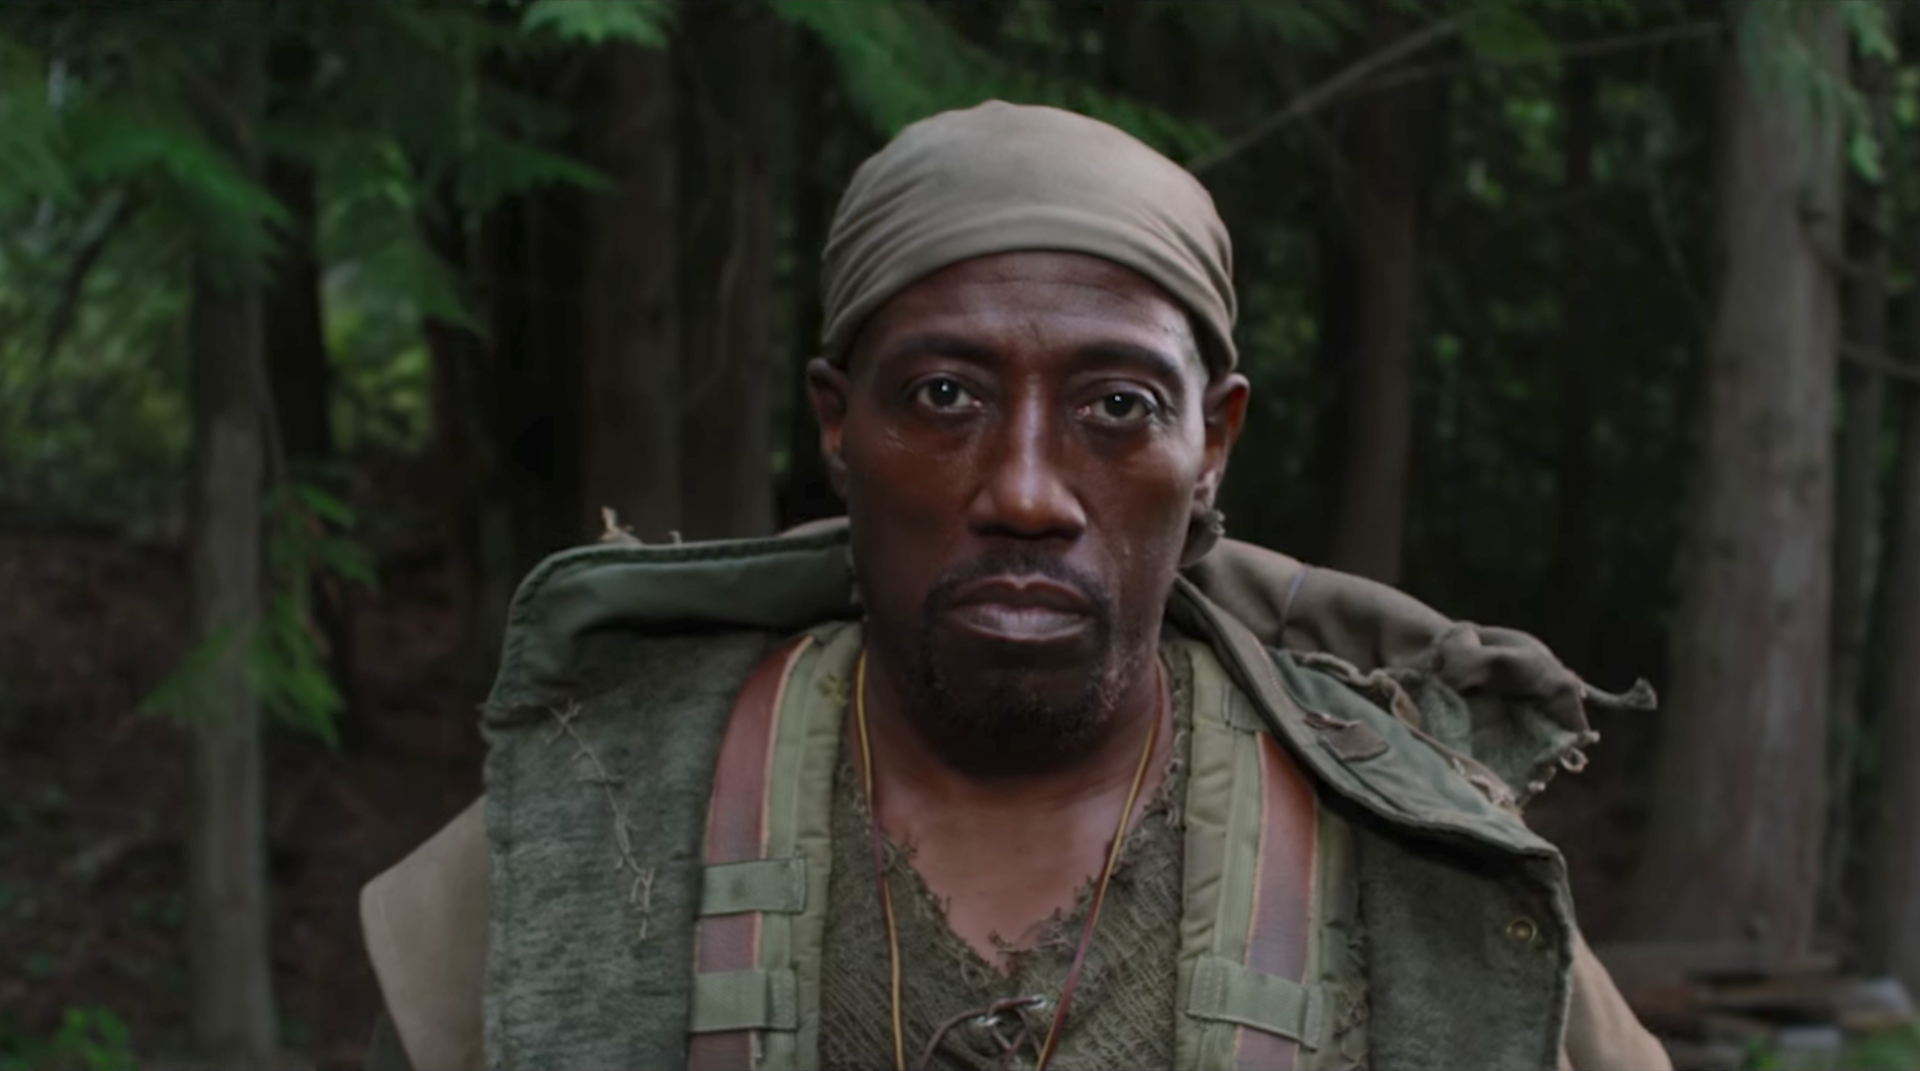 Watch Wesley Snipes Battle Alien Invaders in the First Trailer for The Recall